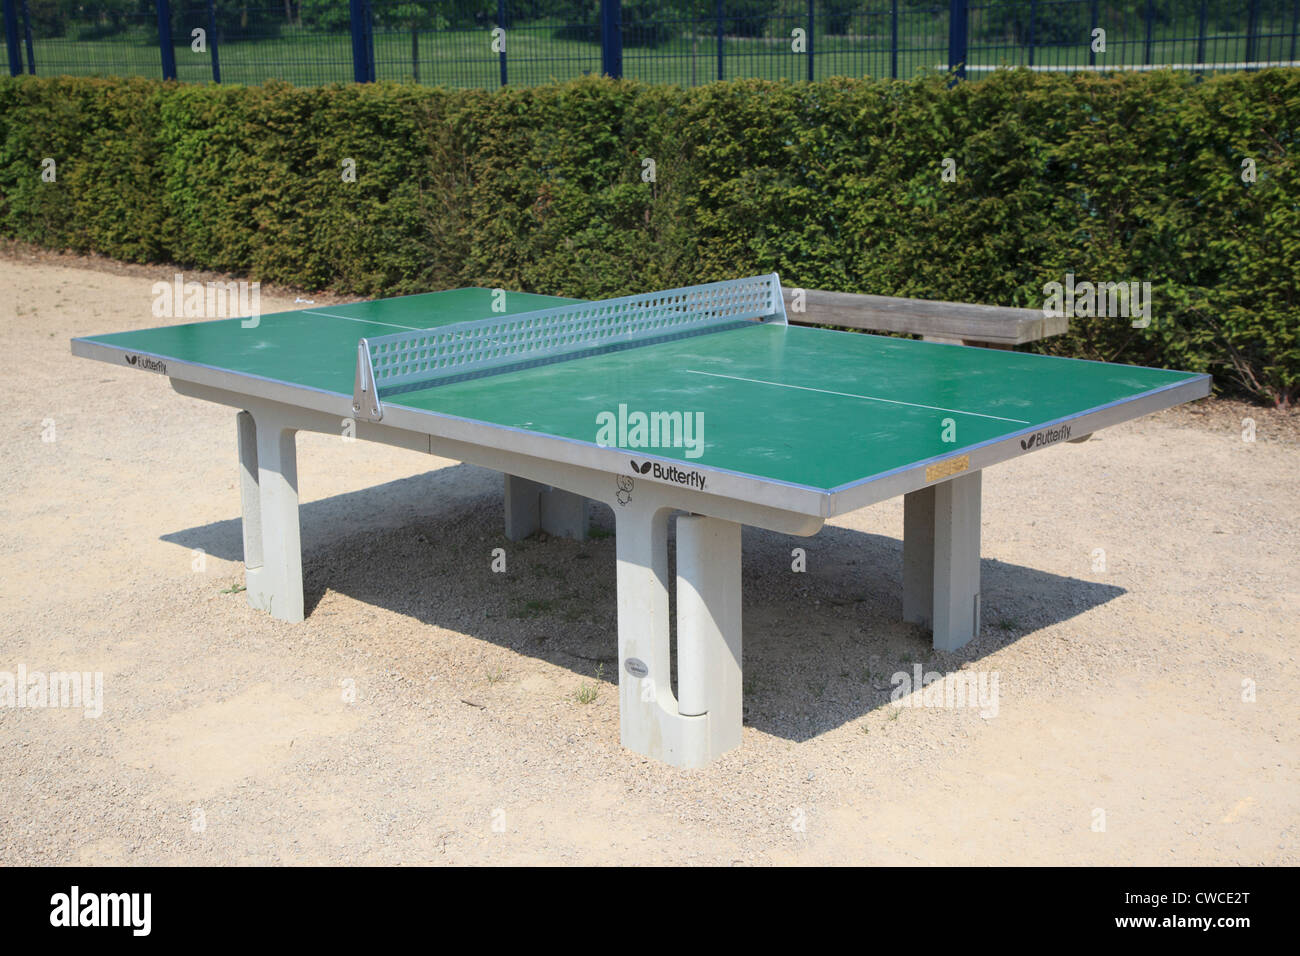 Outdoor tavolo da ping pong in Reigate Priory Park Immagini Stock